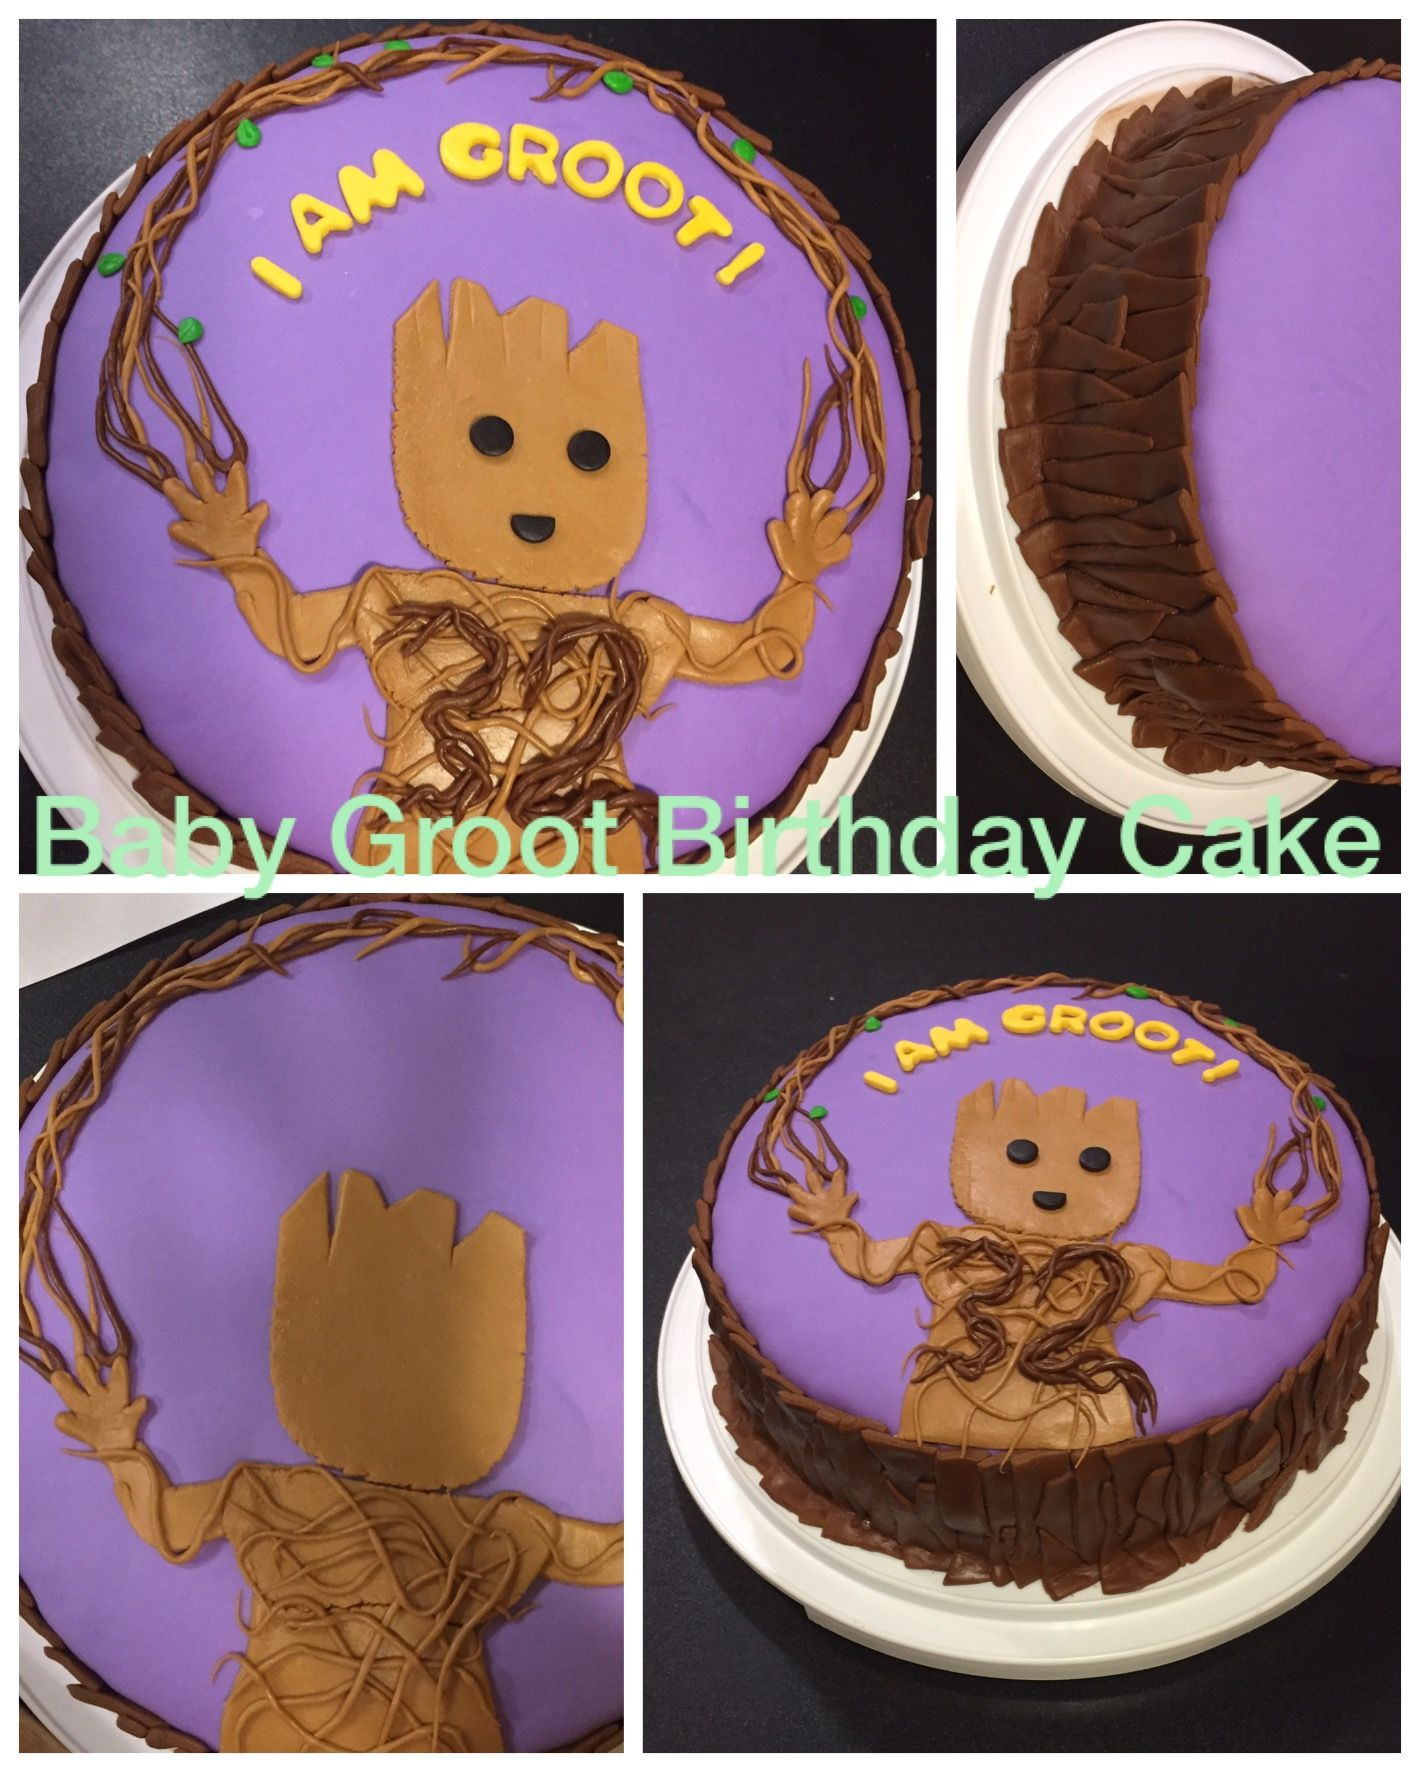 Baby Groot Birthday Cake From Guardians Of The Galaxy Vol